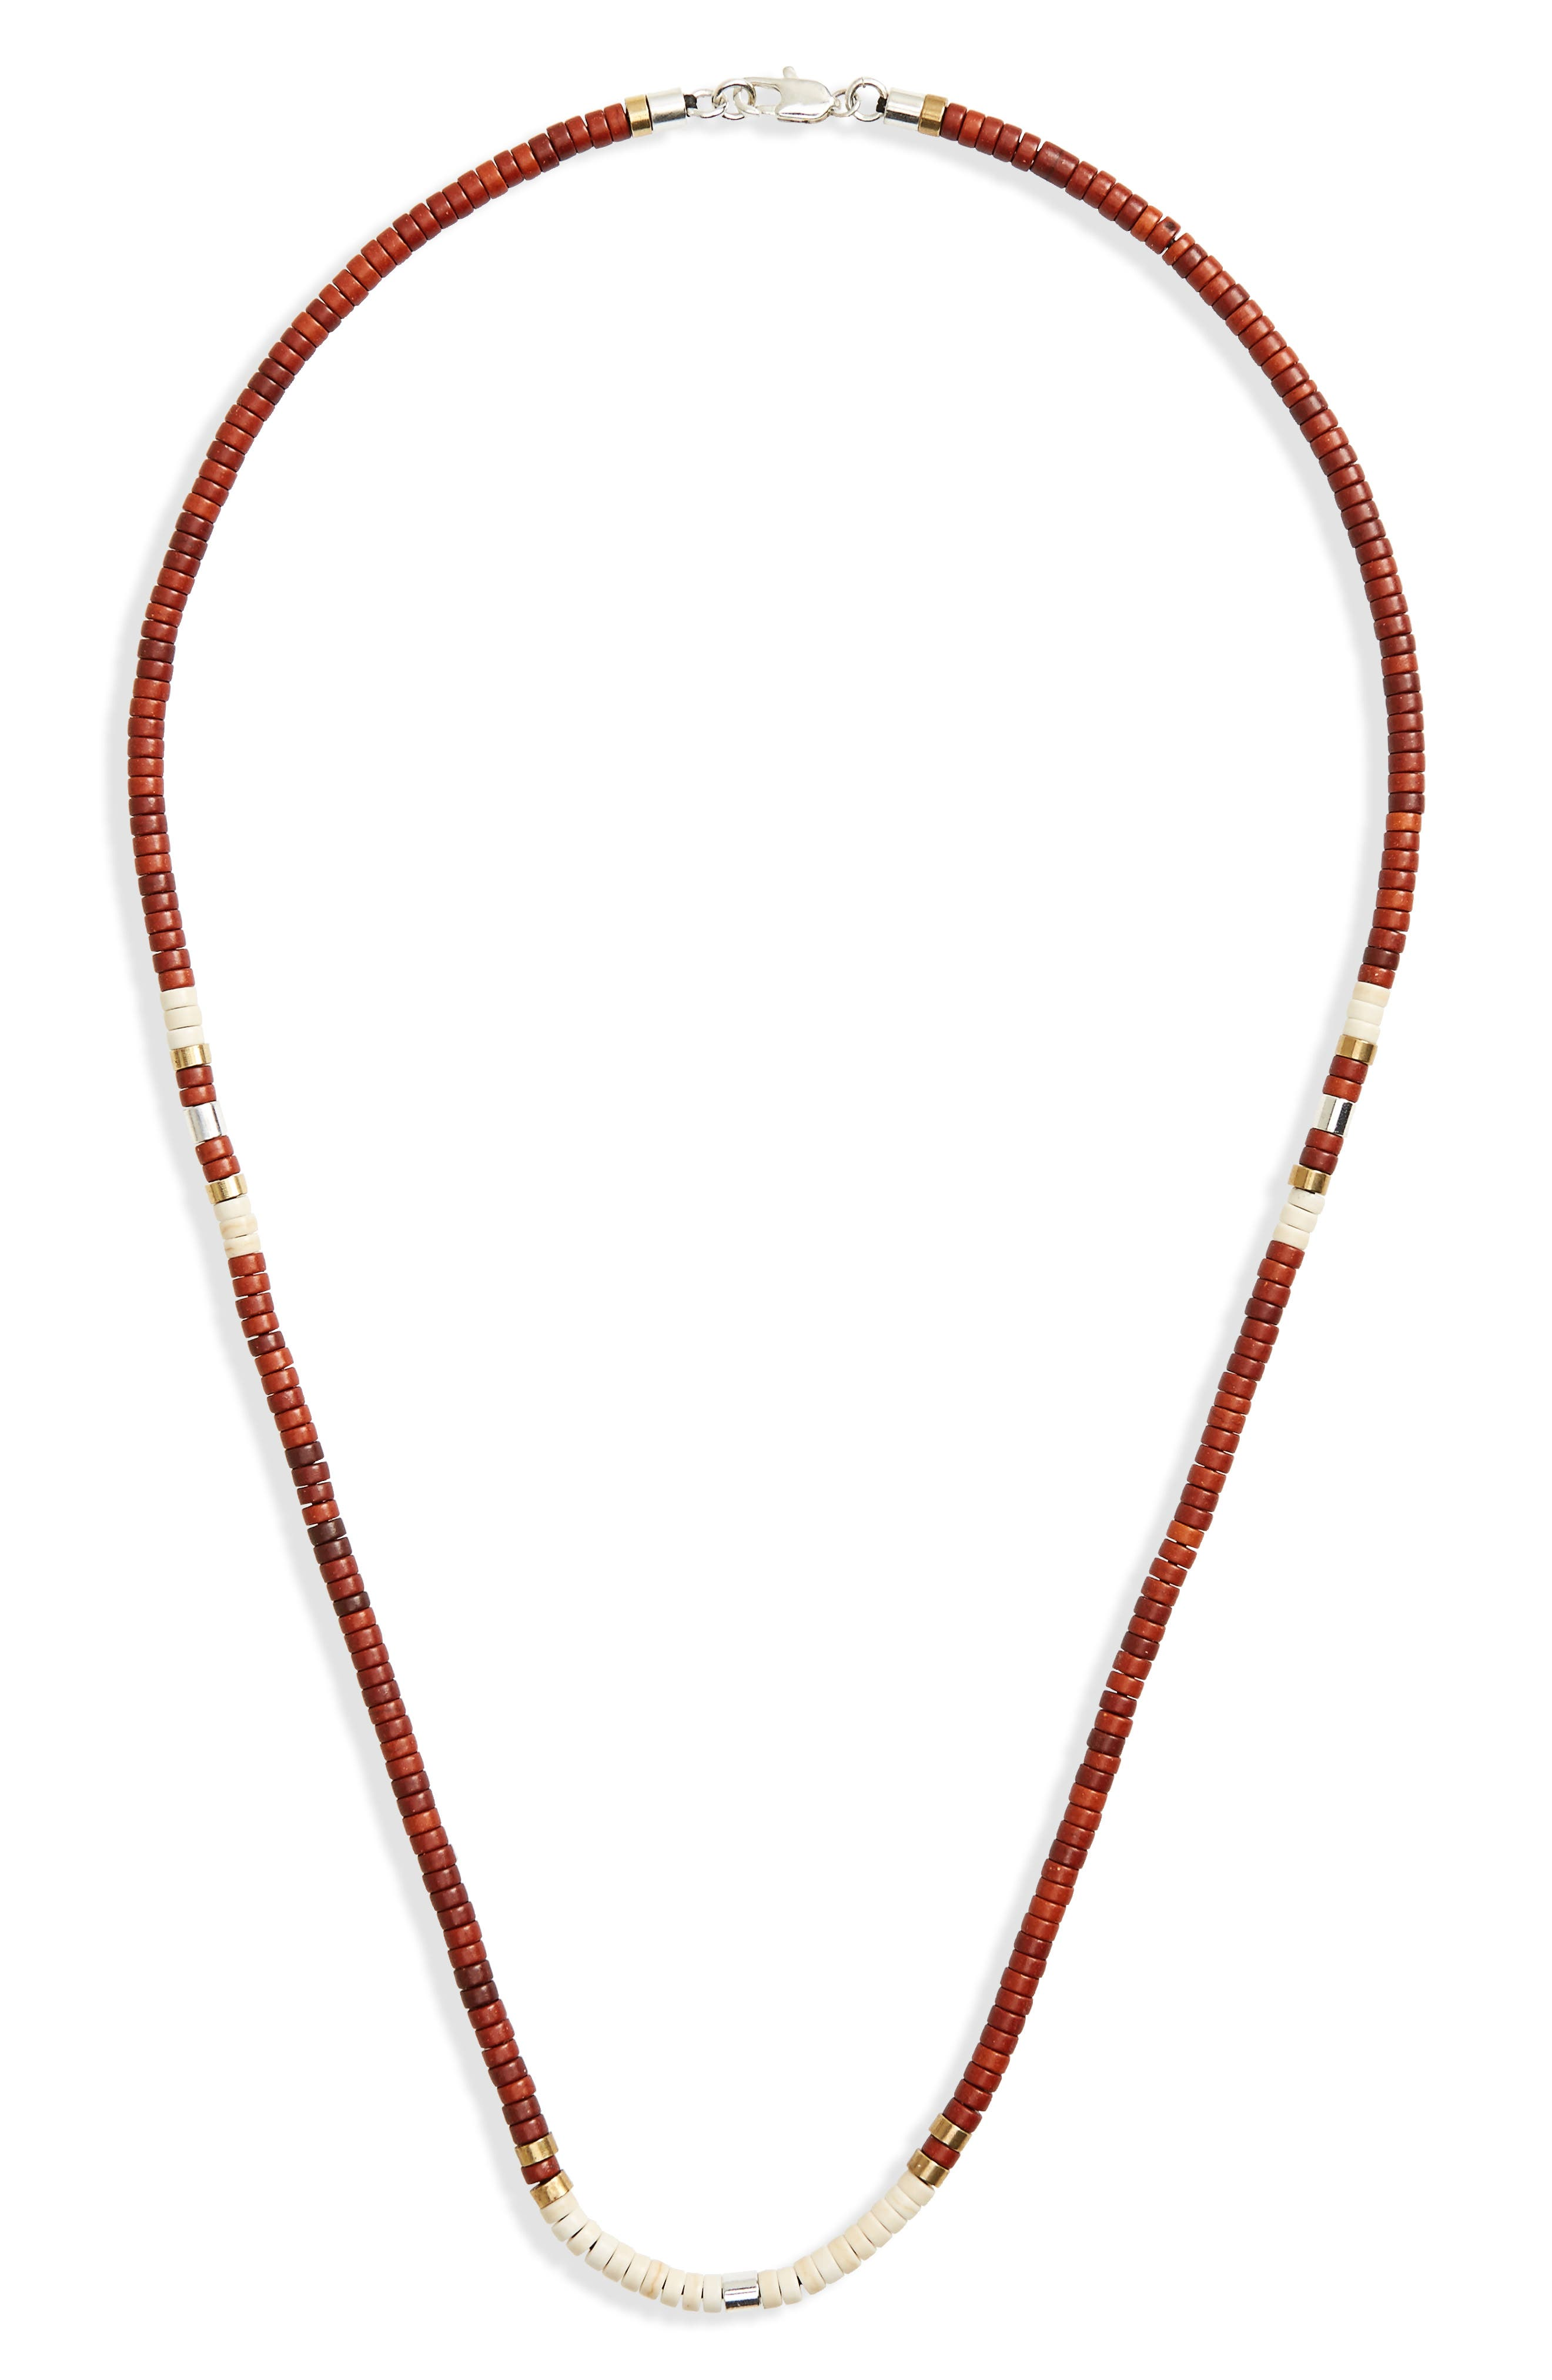 Main Image - Link Up Disc Turquoise Bead Necklace